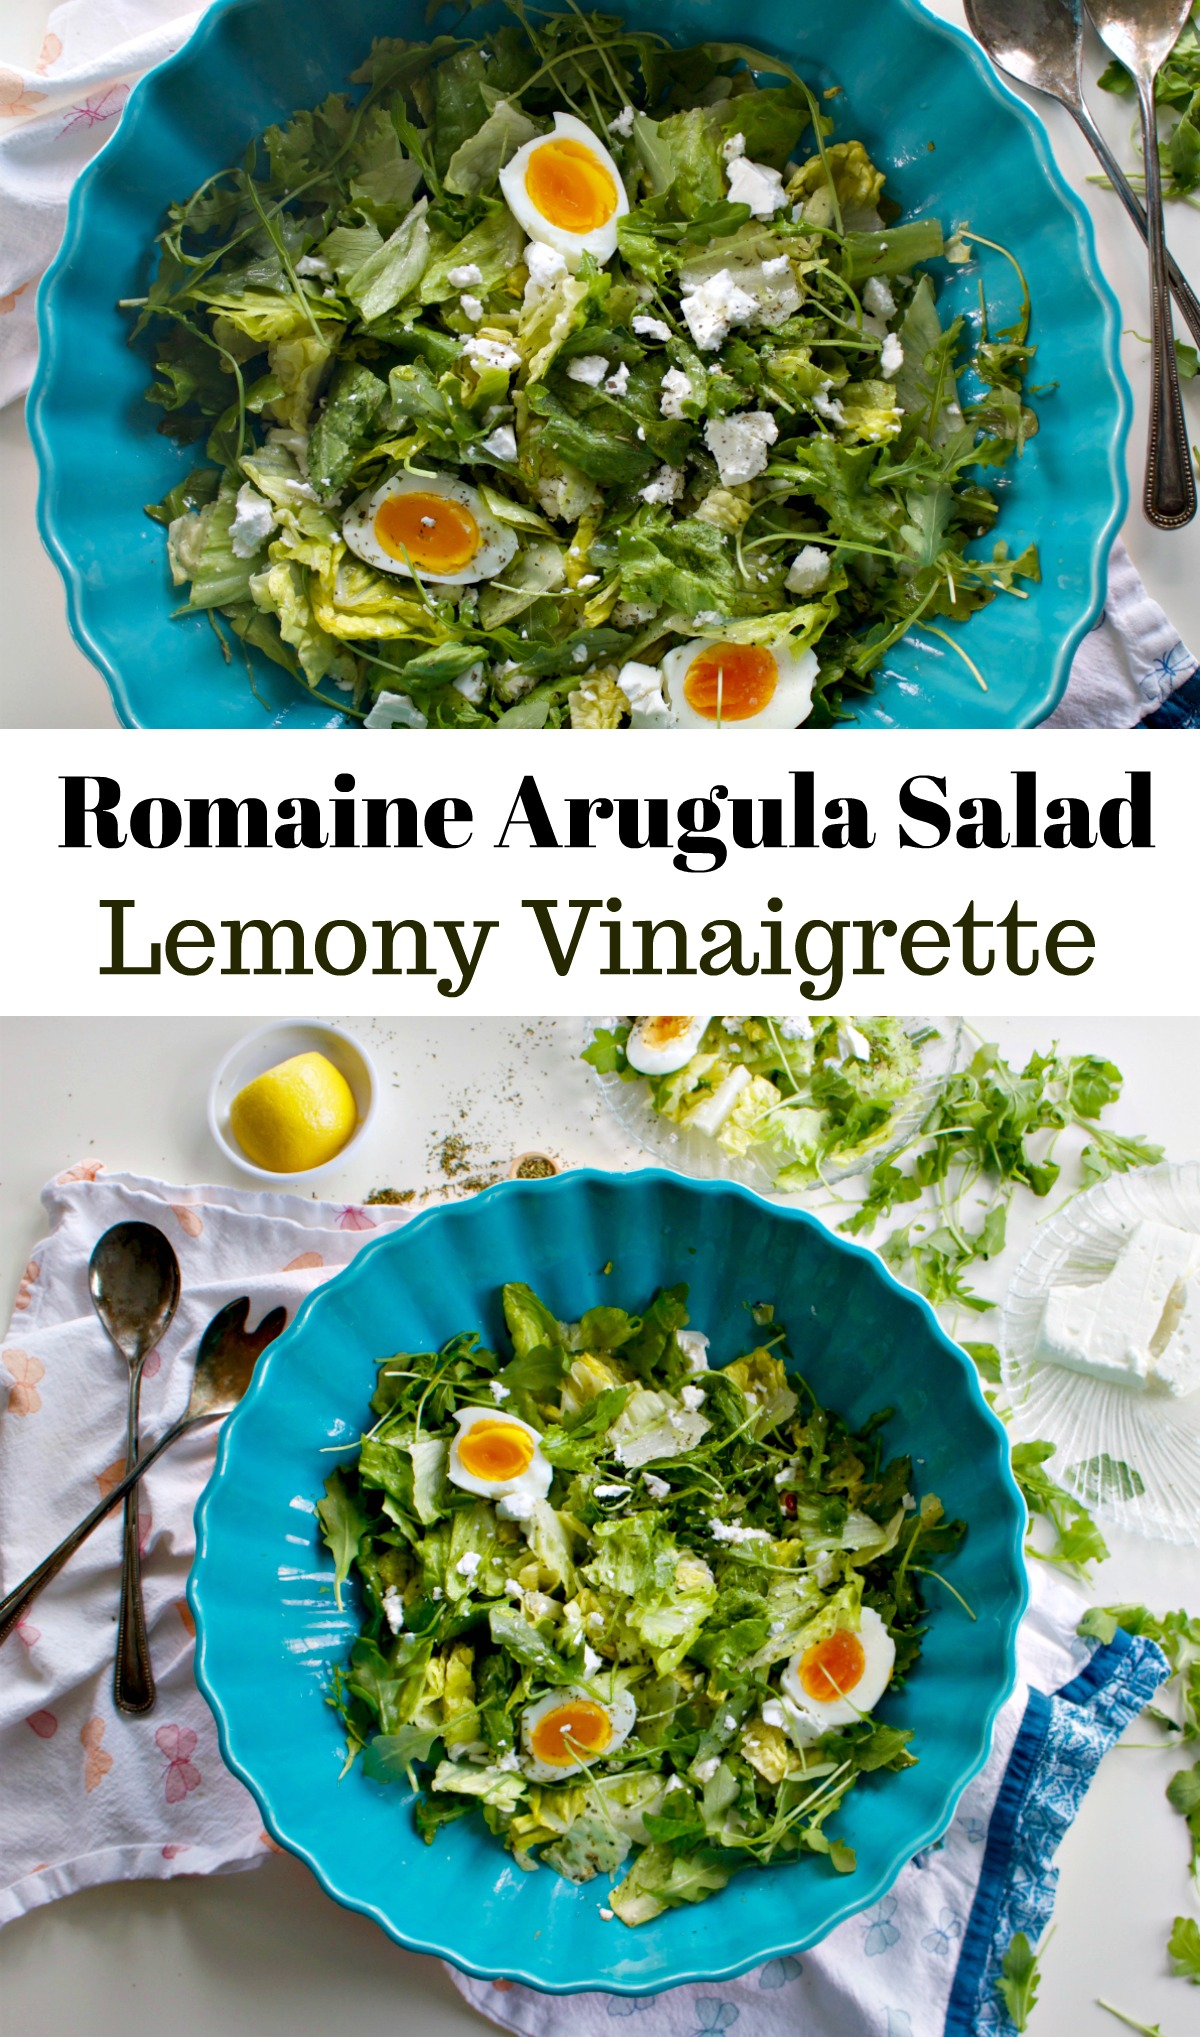 Romaine Arugula with Lemon Vinaigrette Recipe with Soft Hard Boiled Eggs from Spinach Tiger